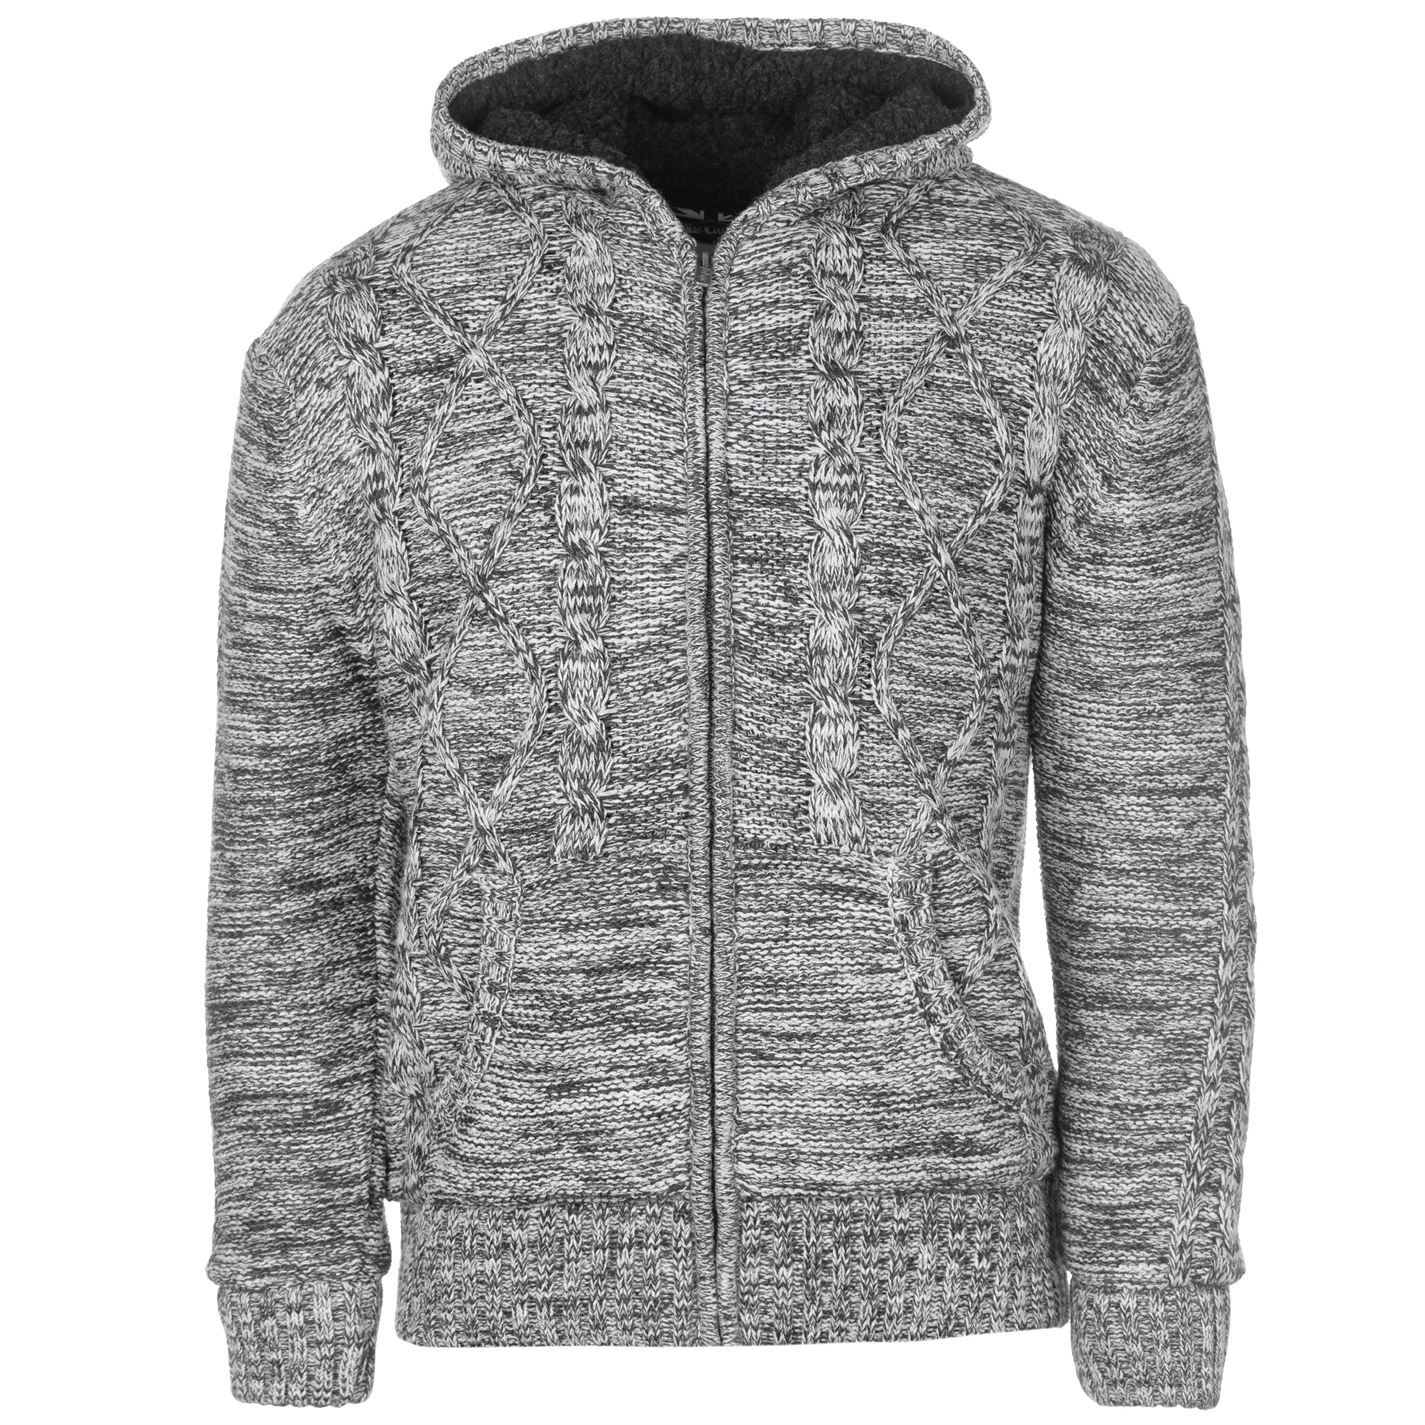 5cca10d14d Details about Lee Cooper Mens Hooded Lined Knitted Cardigan Knitwear Jumper  Top Long Sleeve